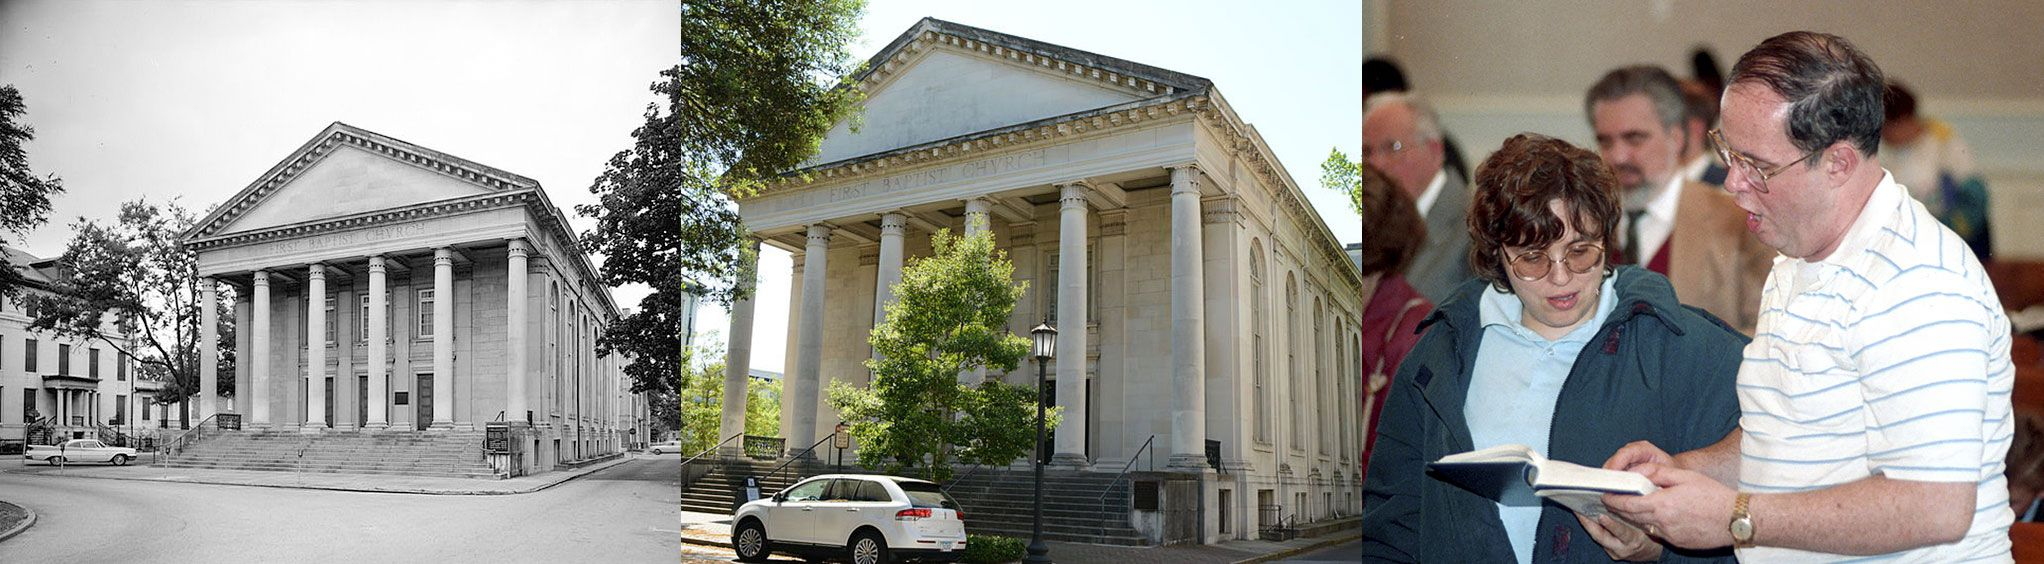 First Baptist Church of Savannah